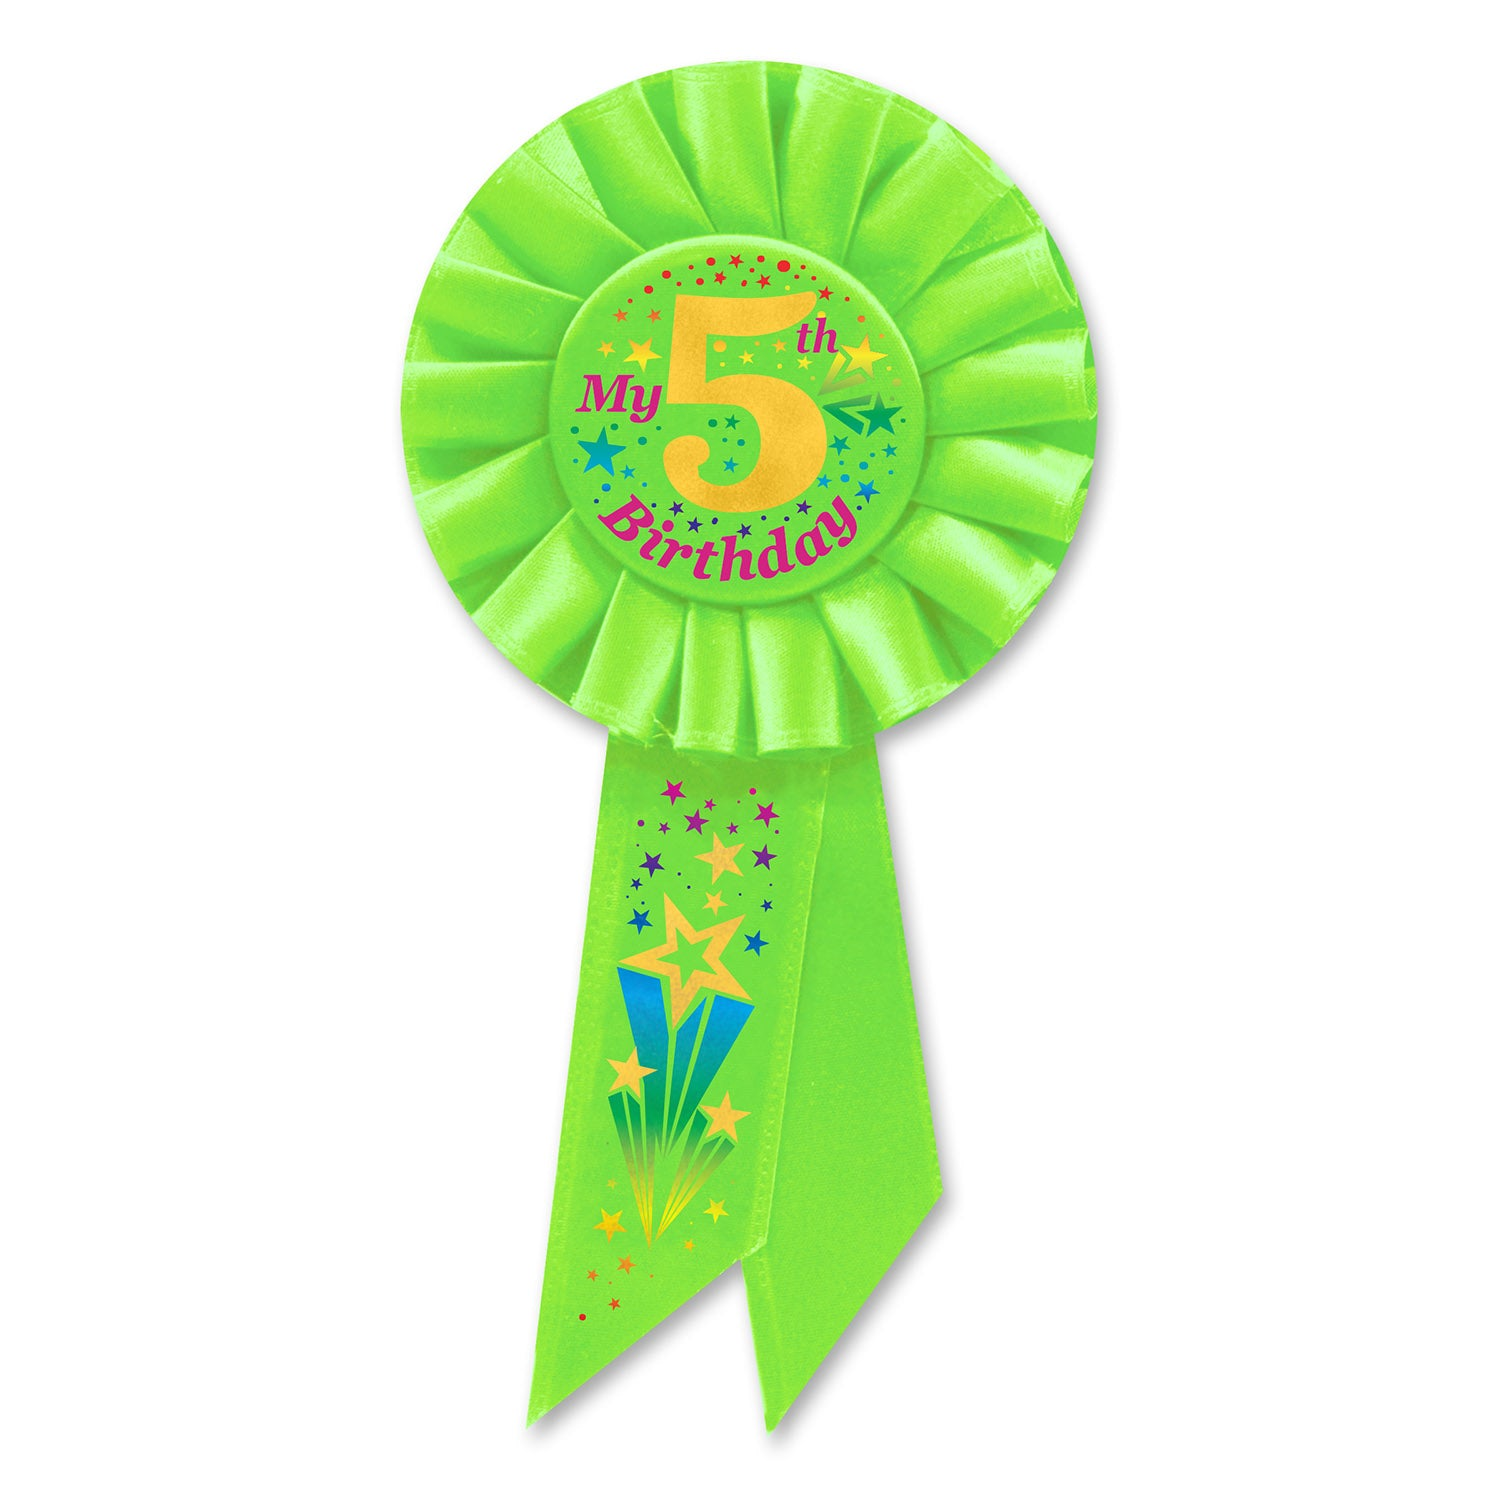 My 5th Birthday Rosette Party Supplies Decorations The Beistle Company